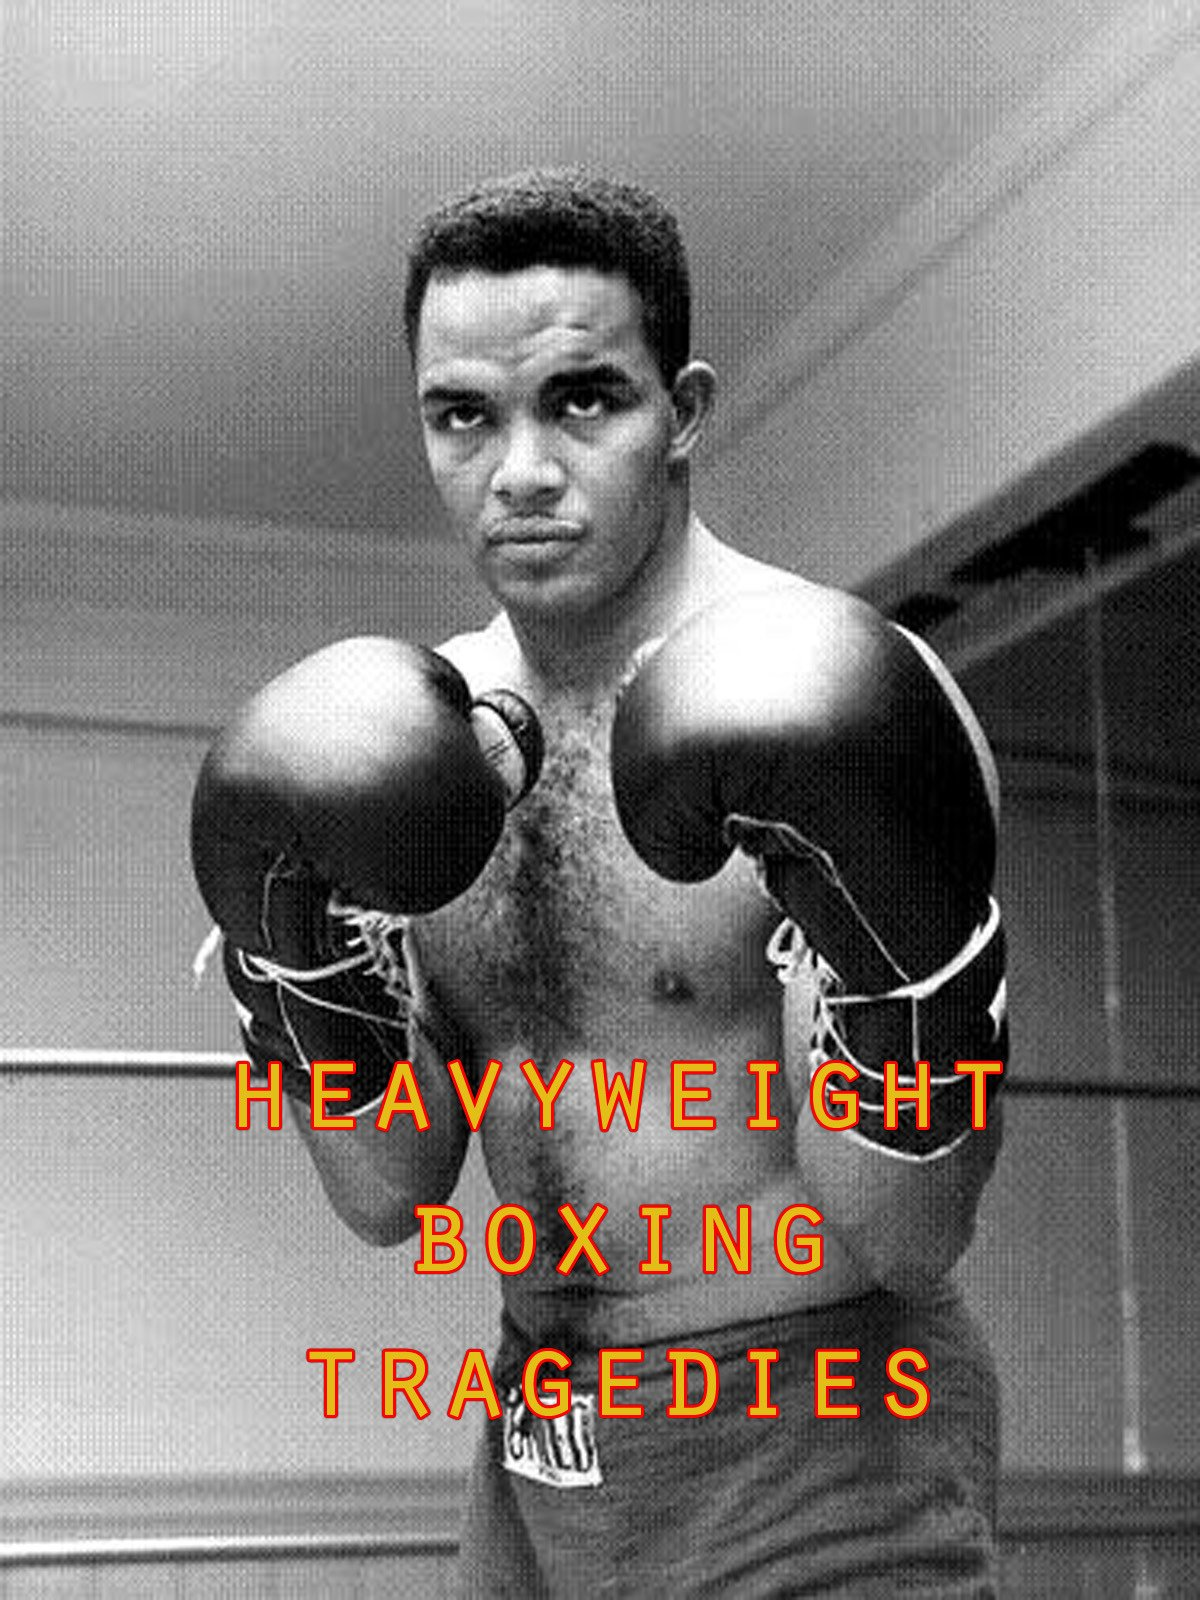 Heavyweight Boxing Tragedies